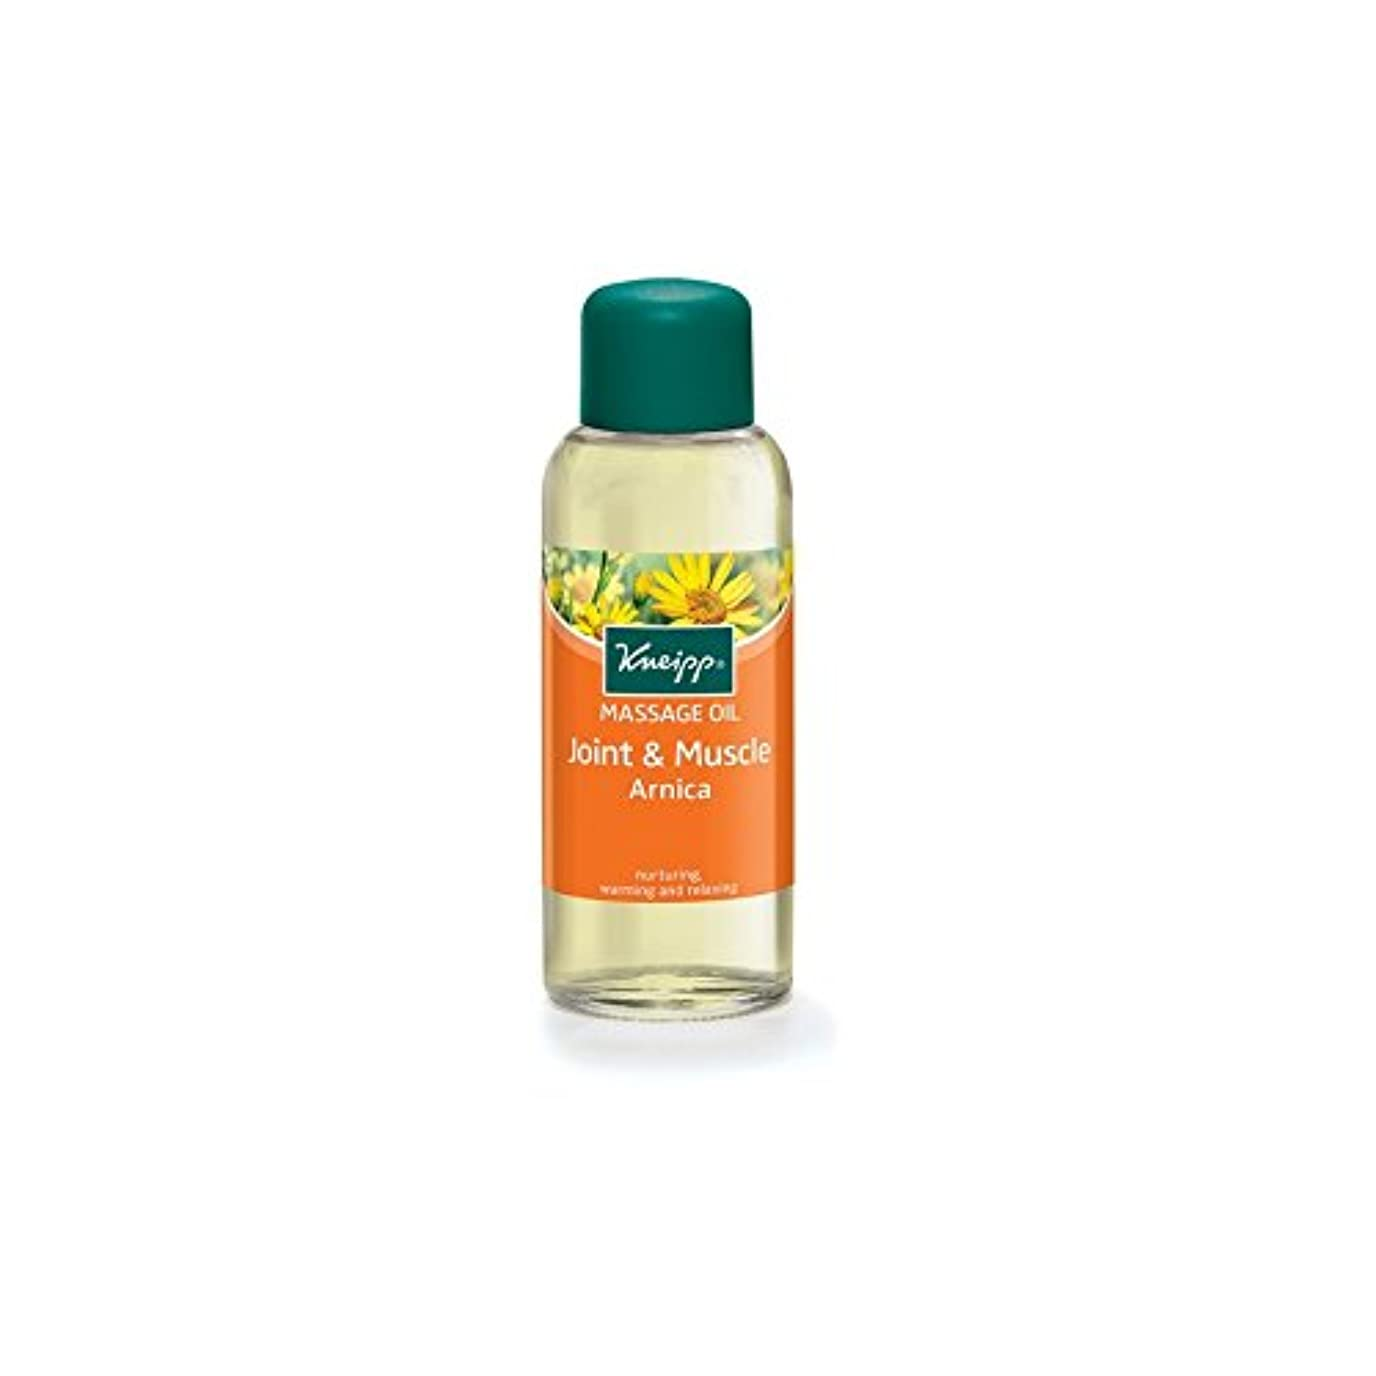 Kneipp Joint and Muscle Arnica Massage Oil (100ml) (Pack of 6) - クナイプの関節や筋肉アルニカマッサージオイル(100ミリリットル) x6 [並行輸入品]